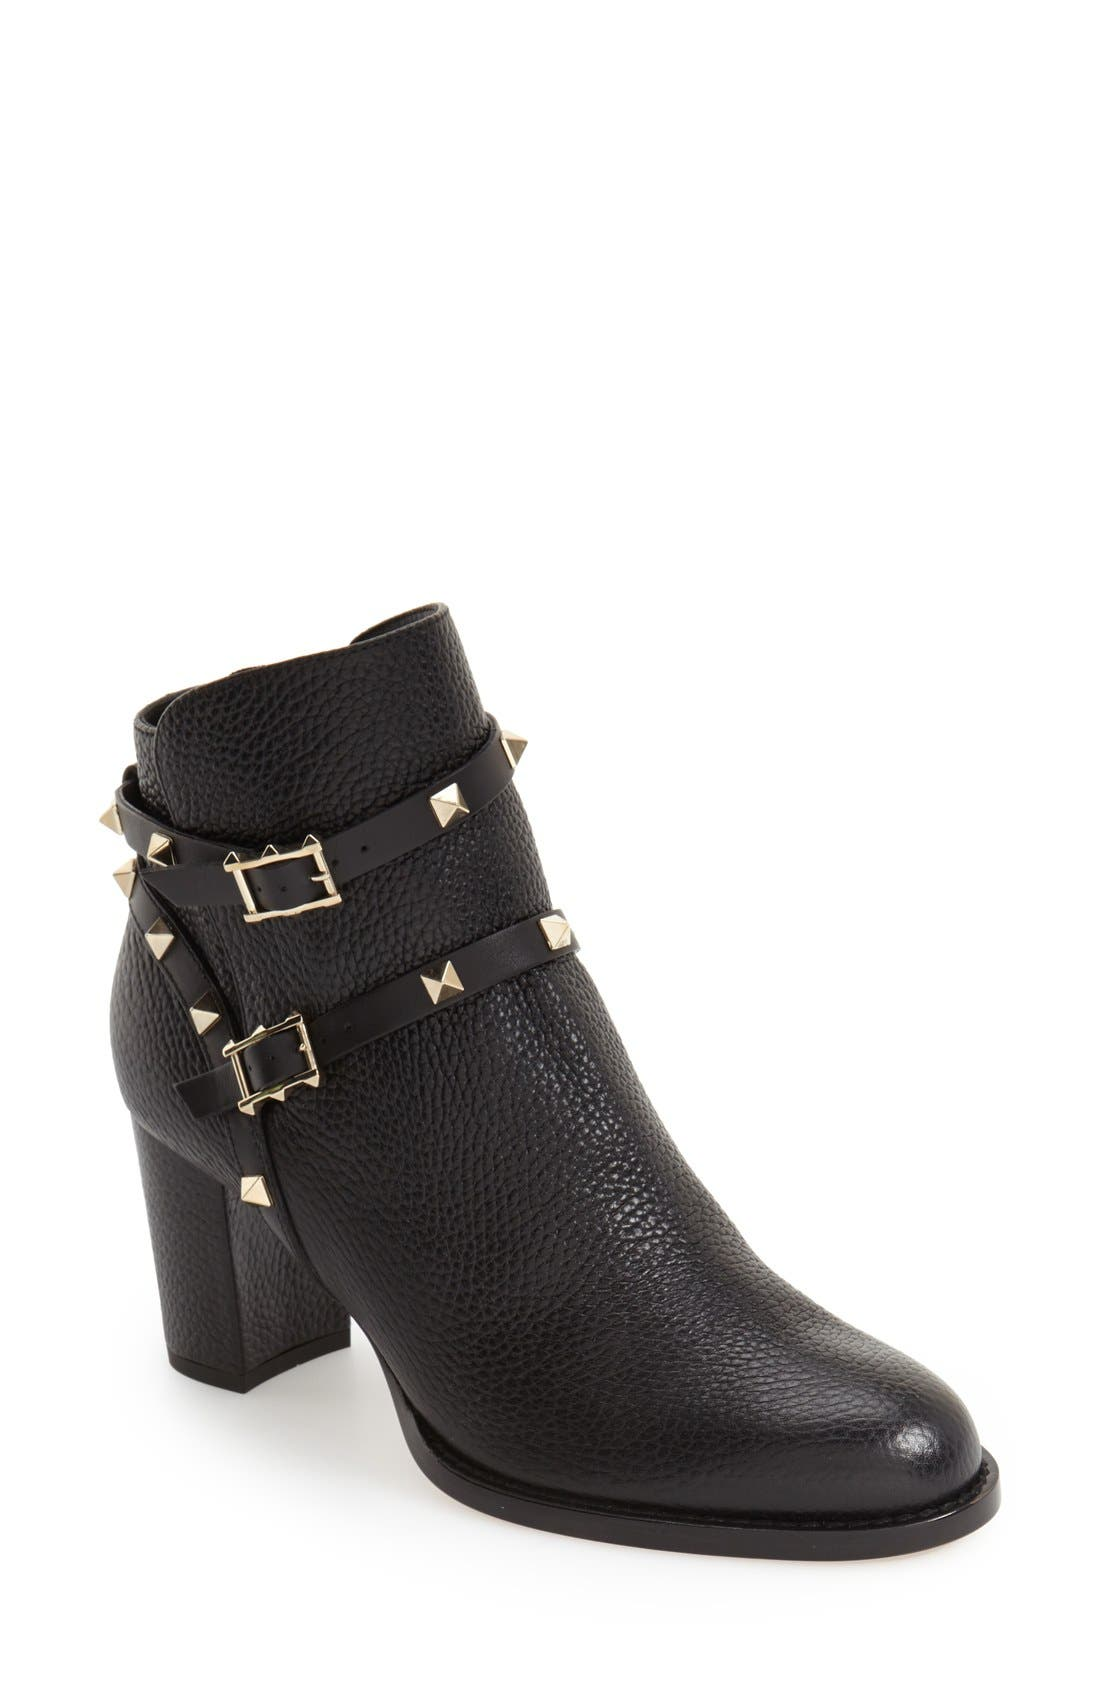 Alternate Image 1 Selected - VALENTINO GARAVANI 'Rockstud' Bootie (Women)